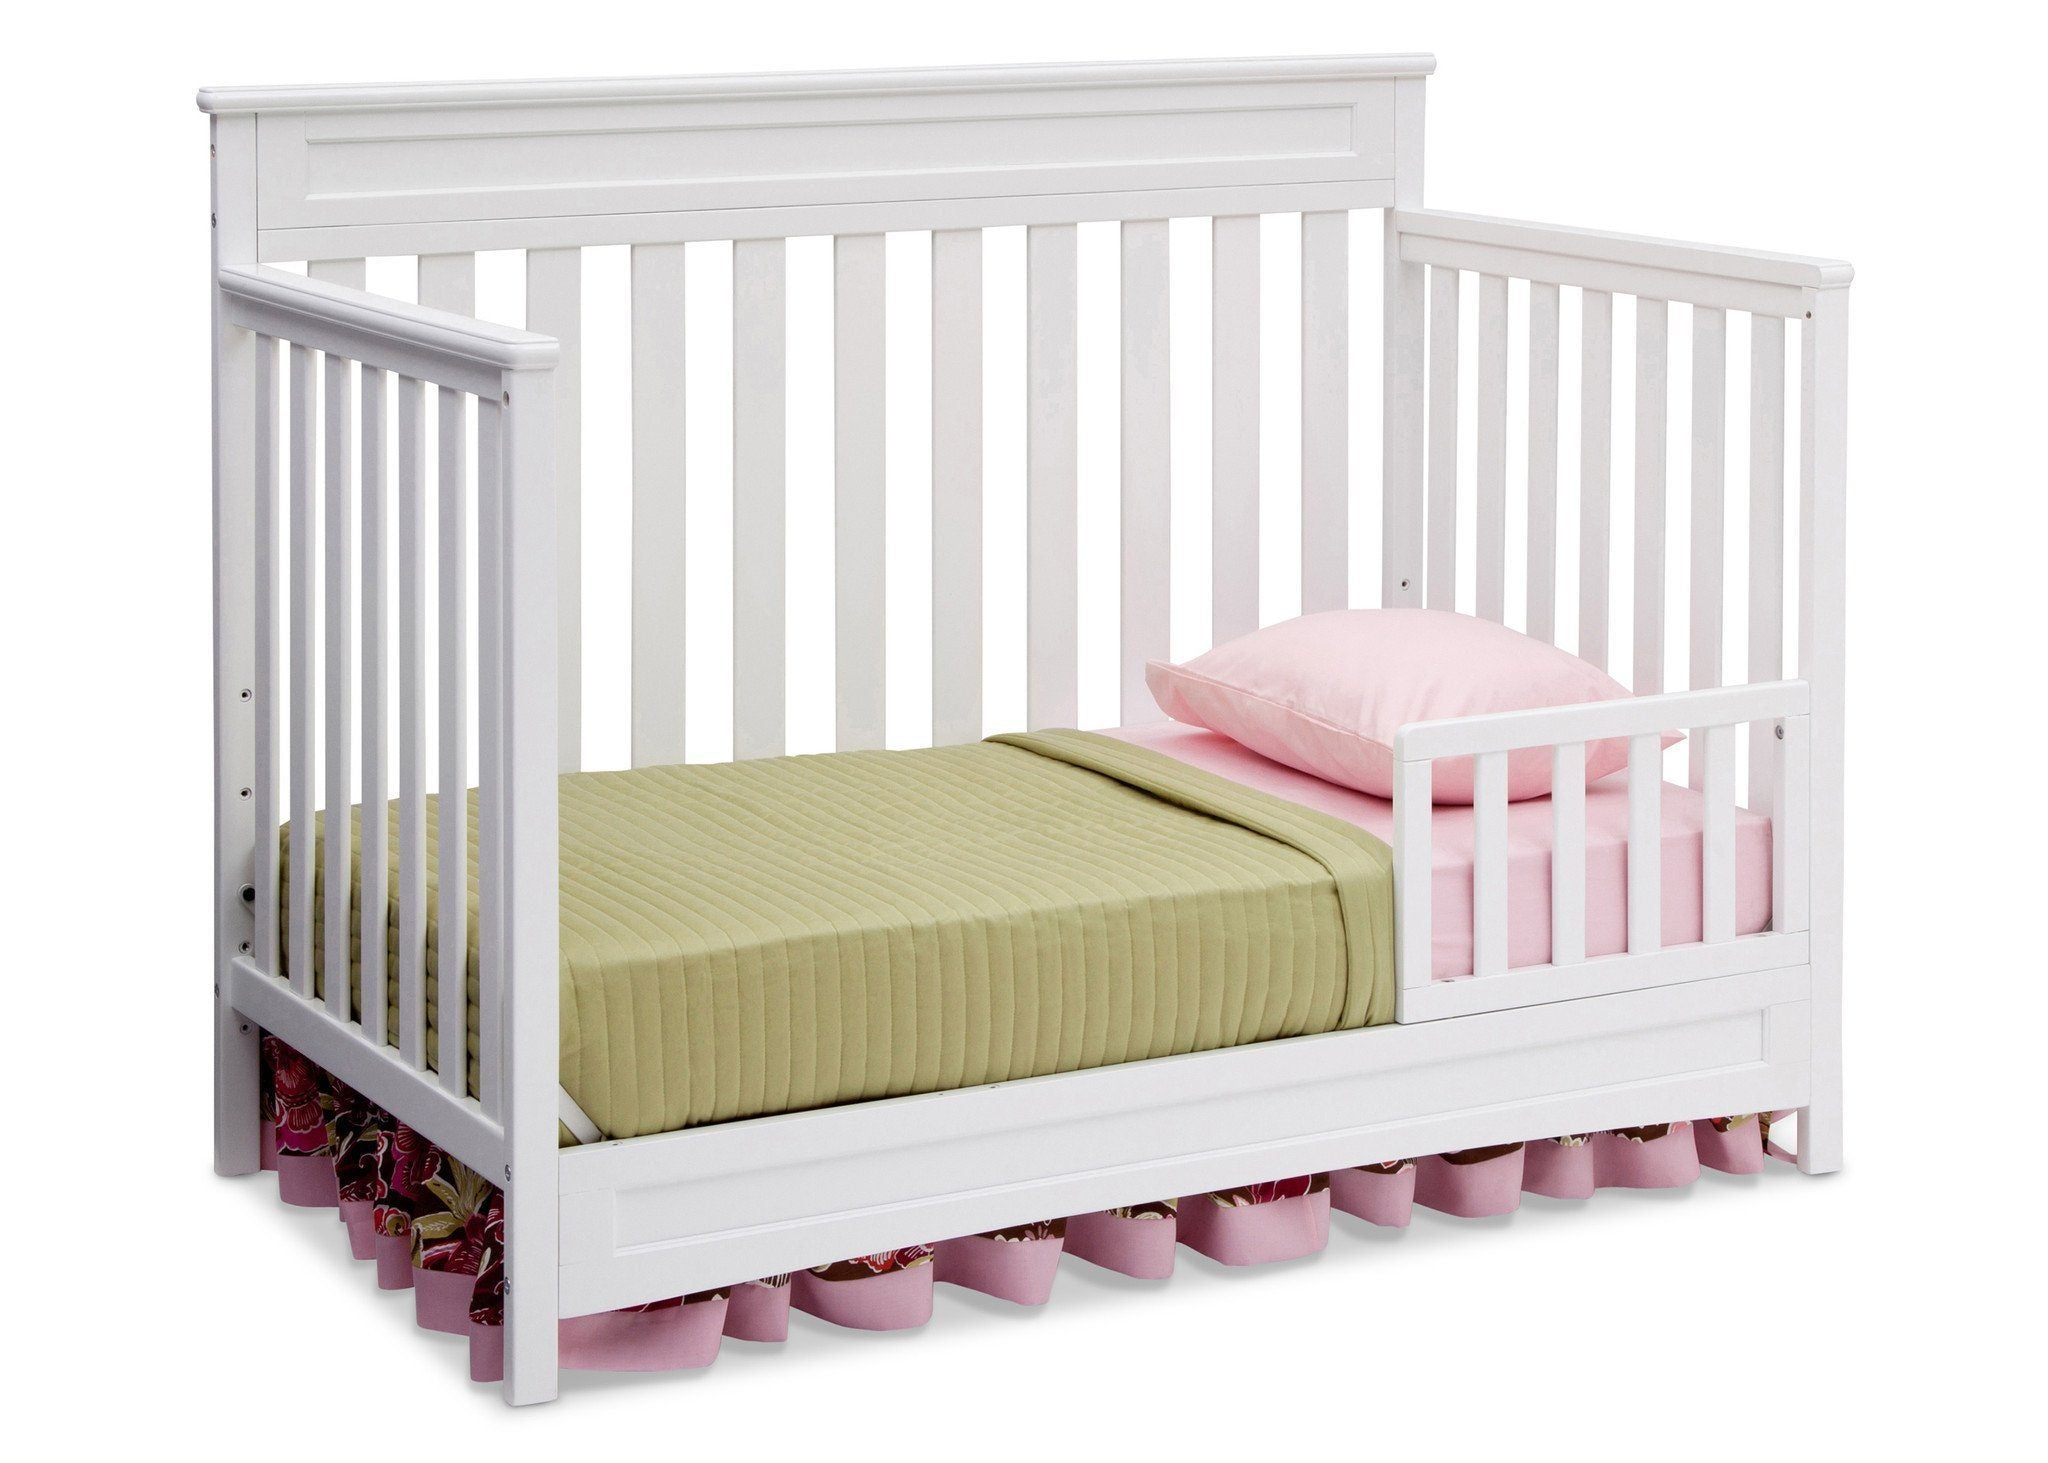 Delta Children White (100) Geneva 4-in-1 Crib, Toddler Bed Conversion with Toddler Guardrail b4b